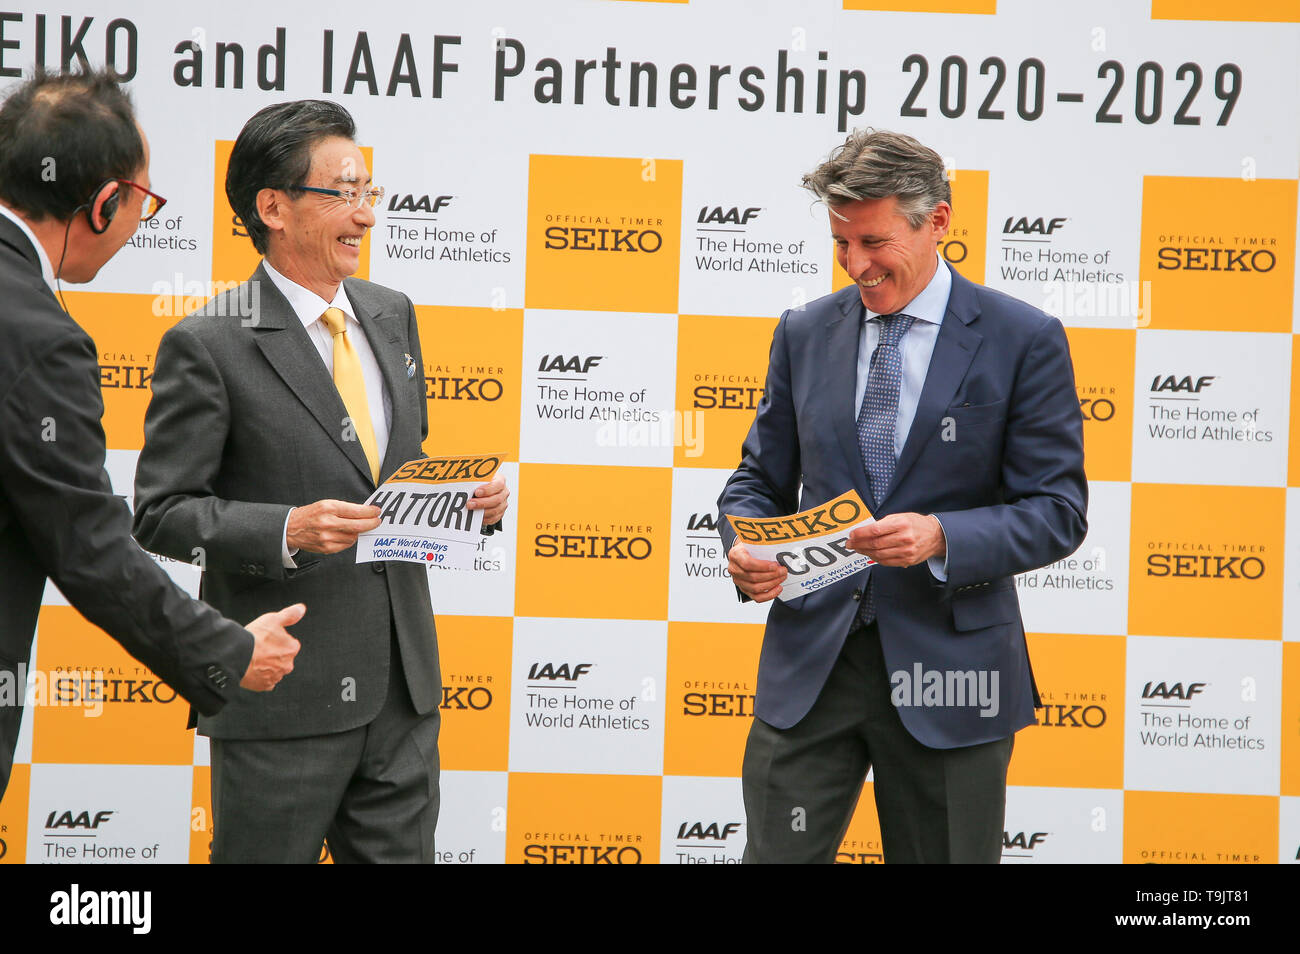 YOKOHAMA, JAPAN - MAY 10: The CEO of Seiko, Mr Shinji Hattori and the IAAF President Sebastian Coe during the official Seiko announcement at the 2019 IAAF World Relay Championships at the Nissan Stadium on May 10, 2019 in Yokohama, Japan. (Photo by Roger Sedres for the IAAF) - Stock Image